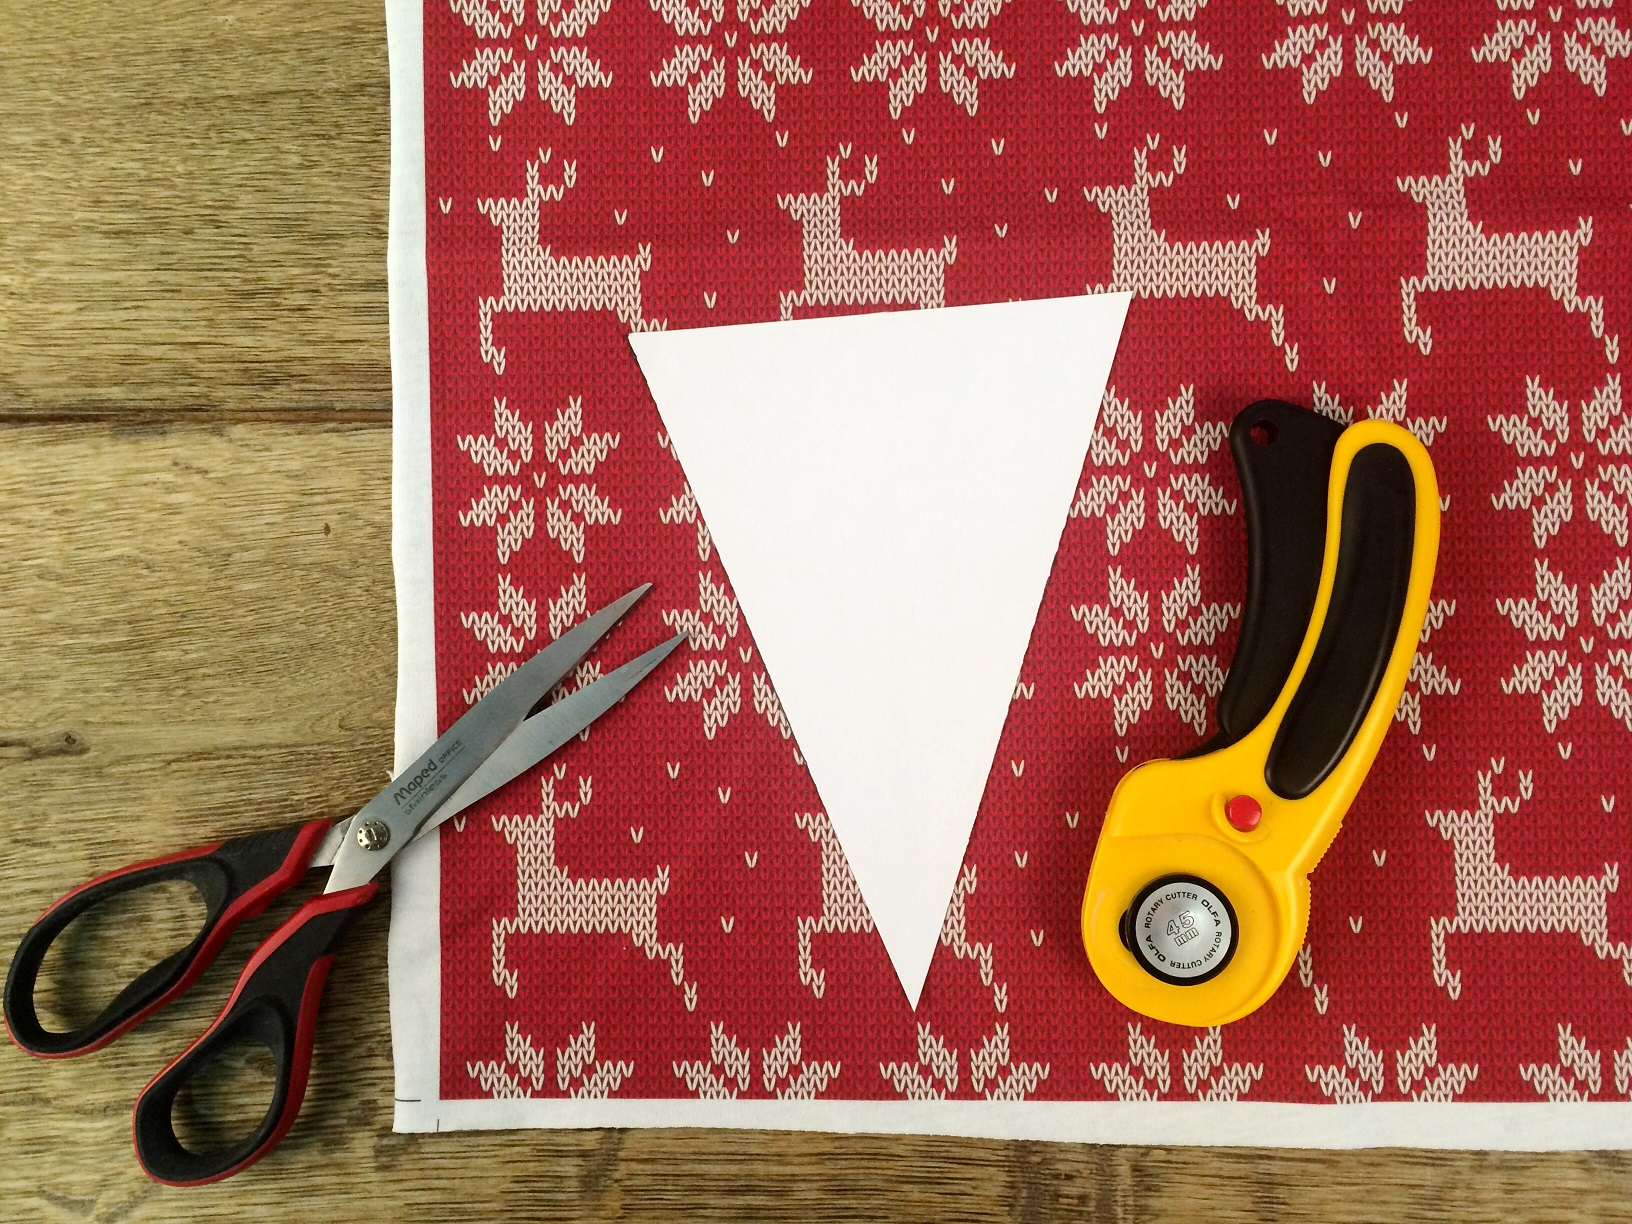 DIY Christmas garland made from fabric scraps